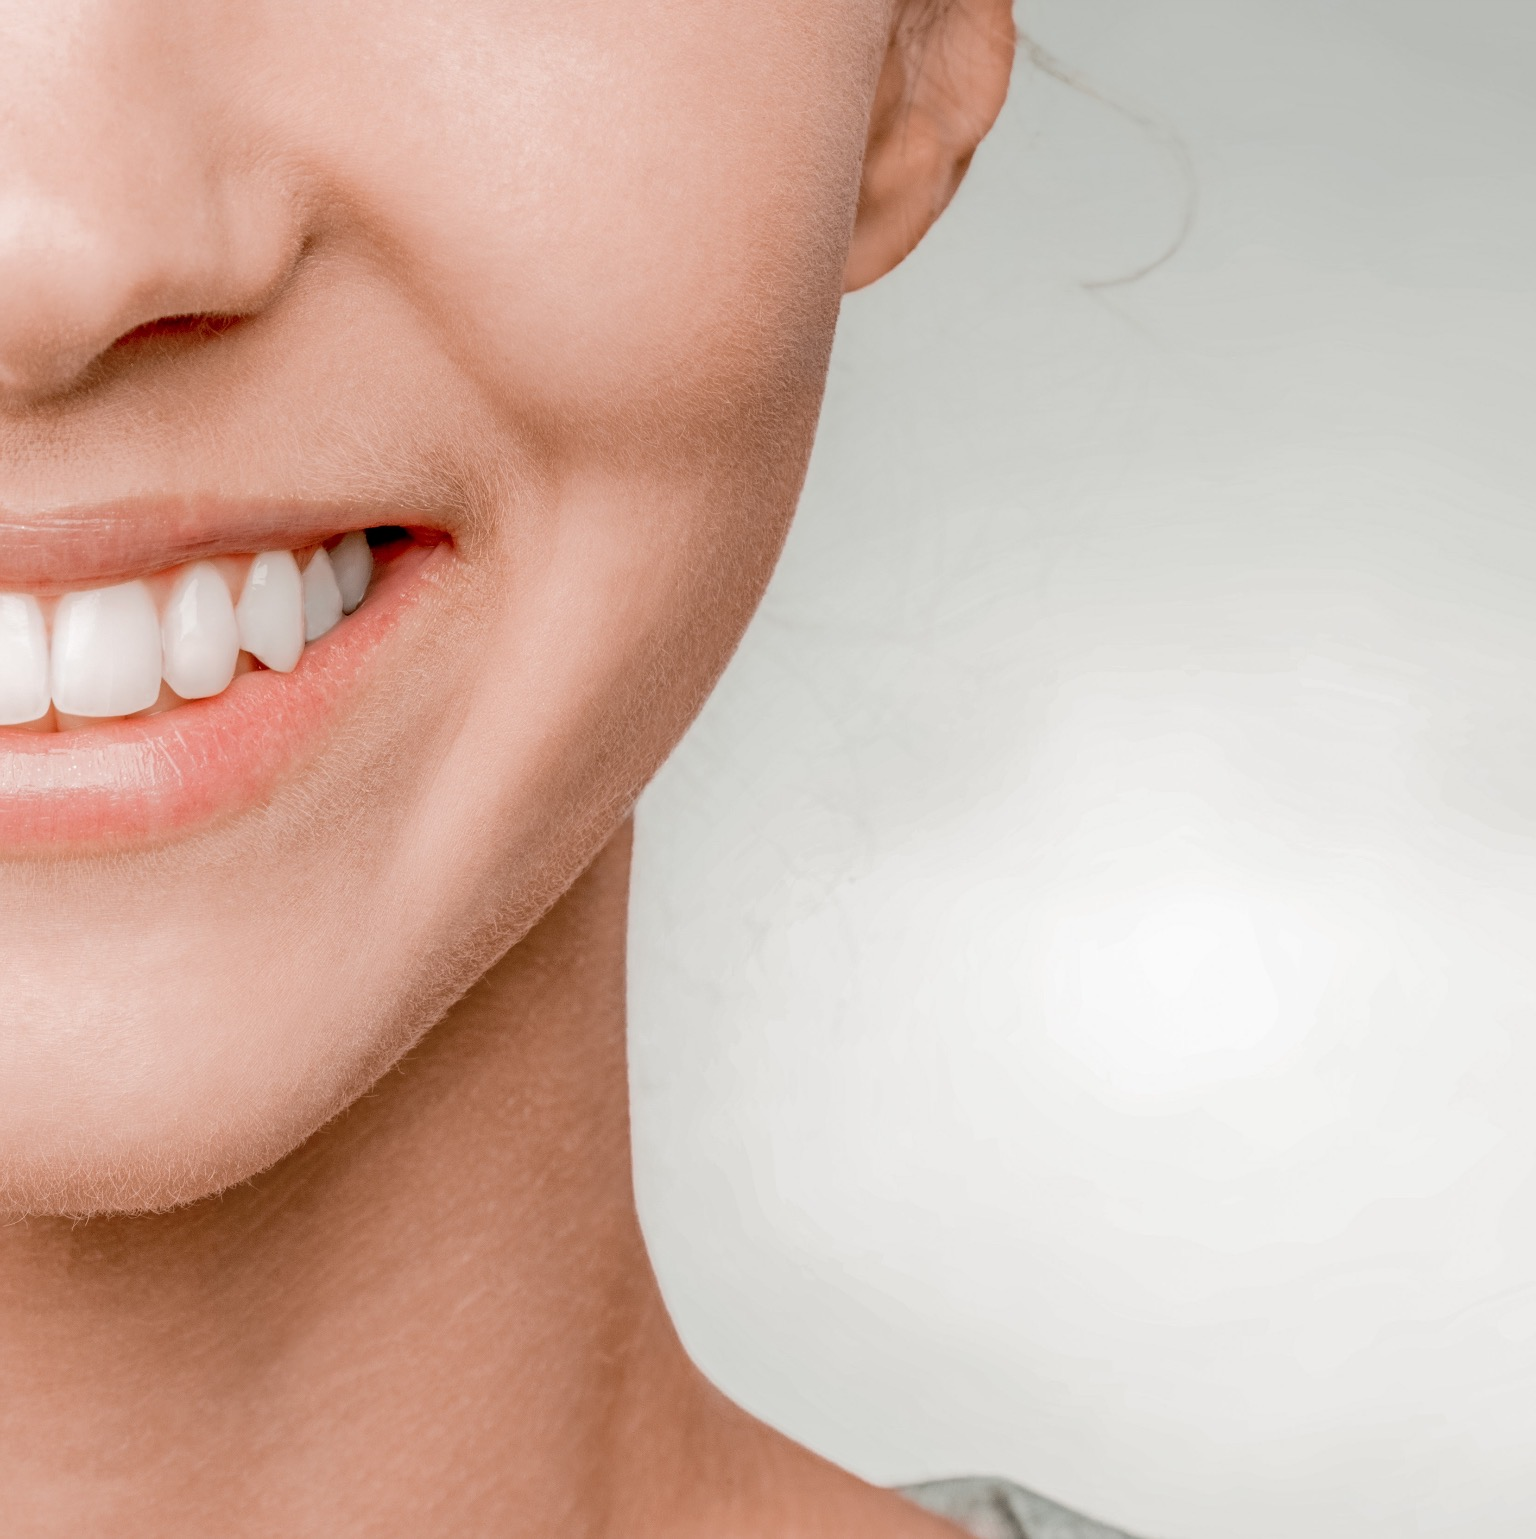 5 Cosmetic Dental Procedures That Will Transform Your Smile